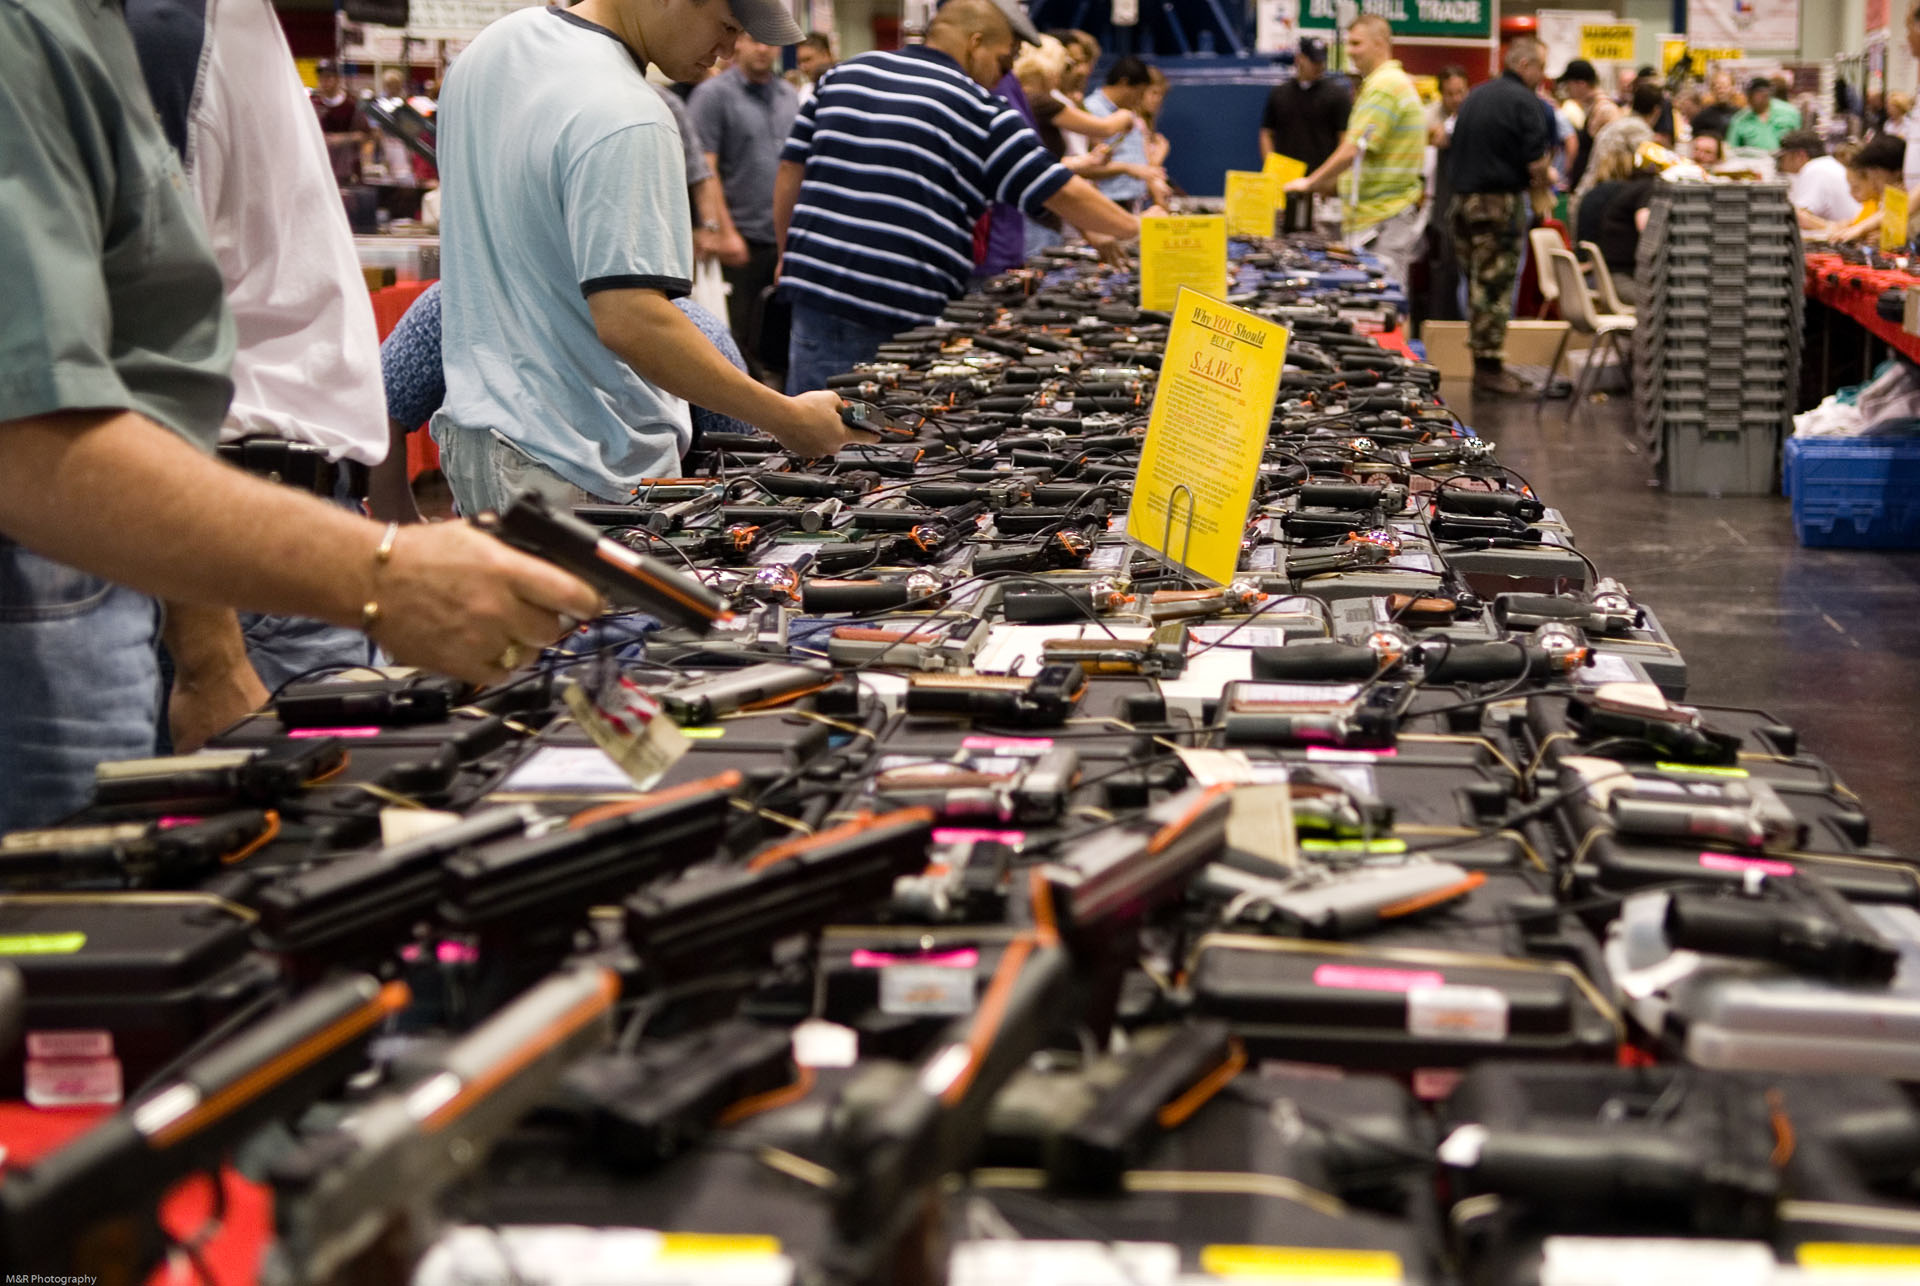 Customers shopping at a gun show